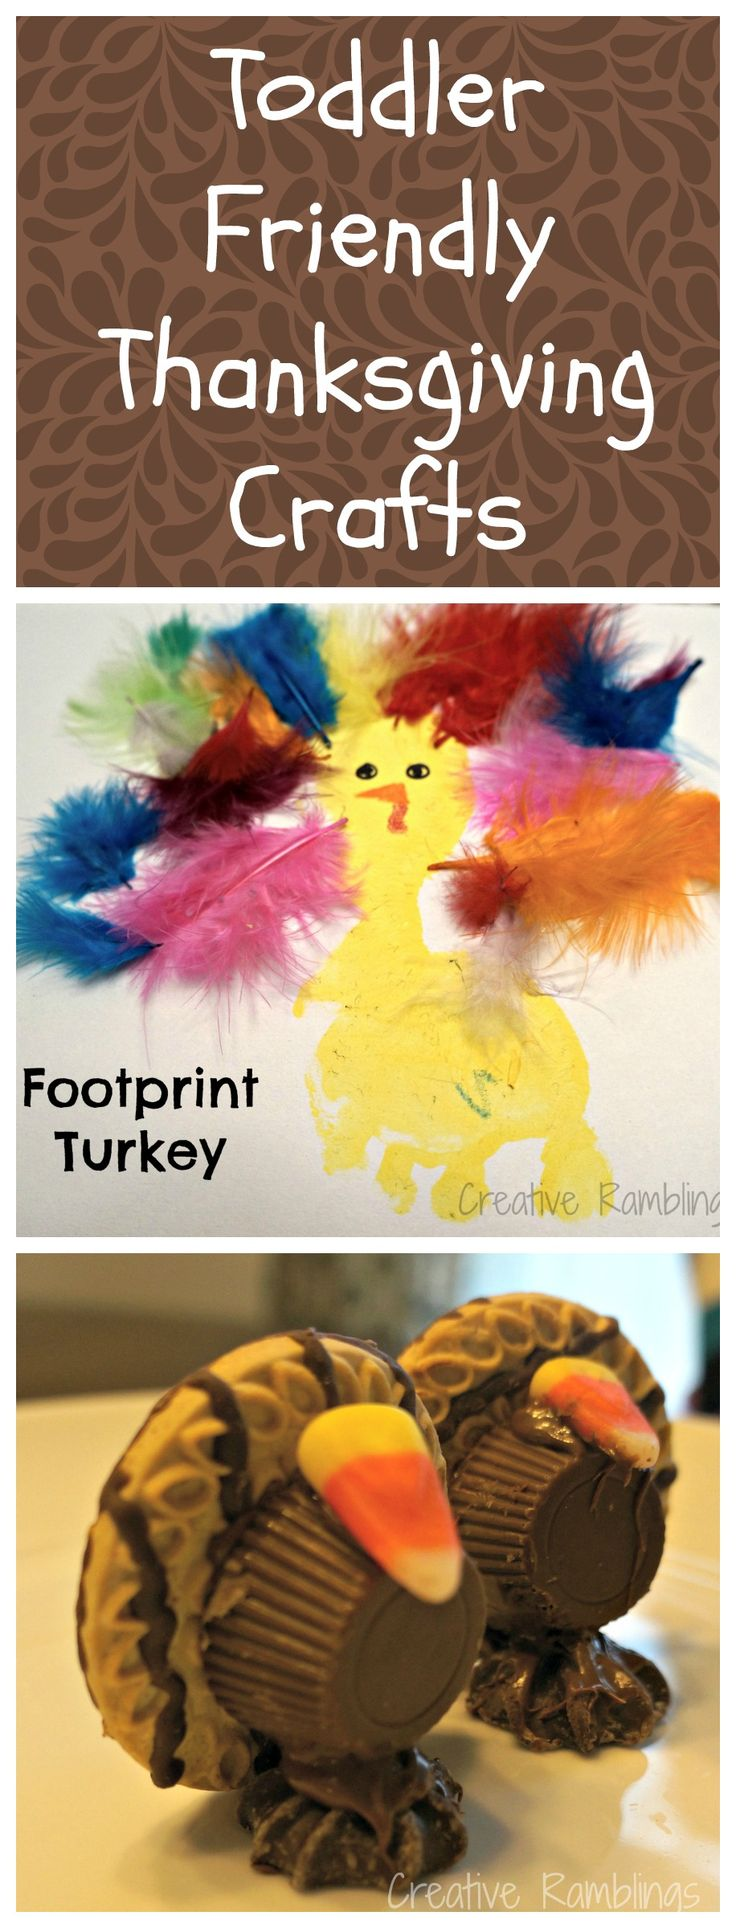 Toddler Friendly #Thanksgiving Crafts // creativerambingsblog.com